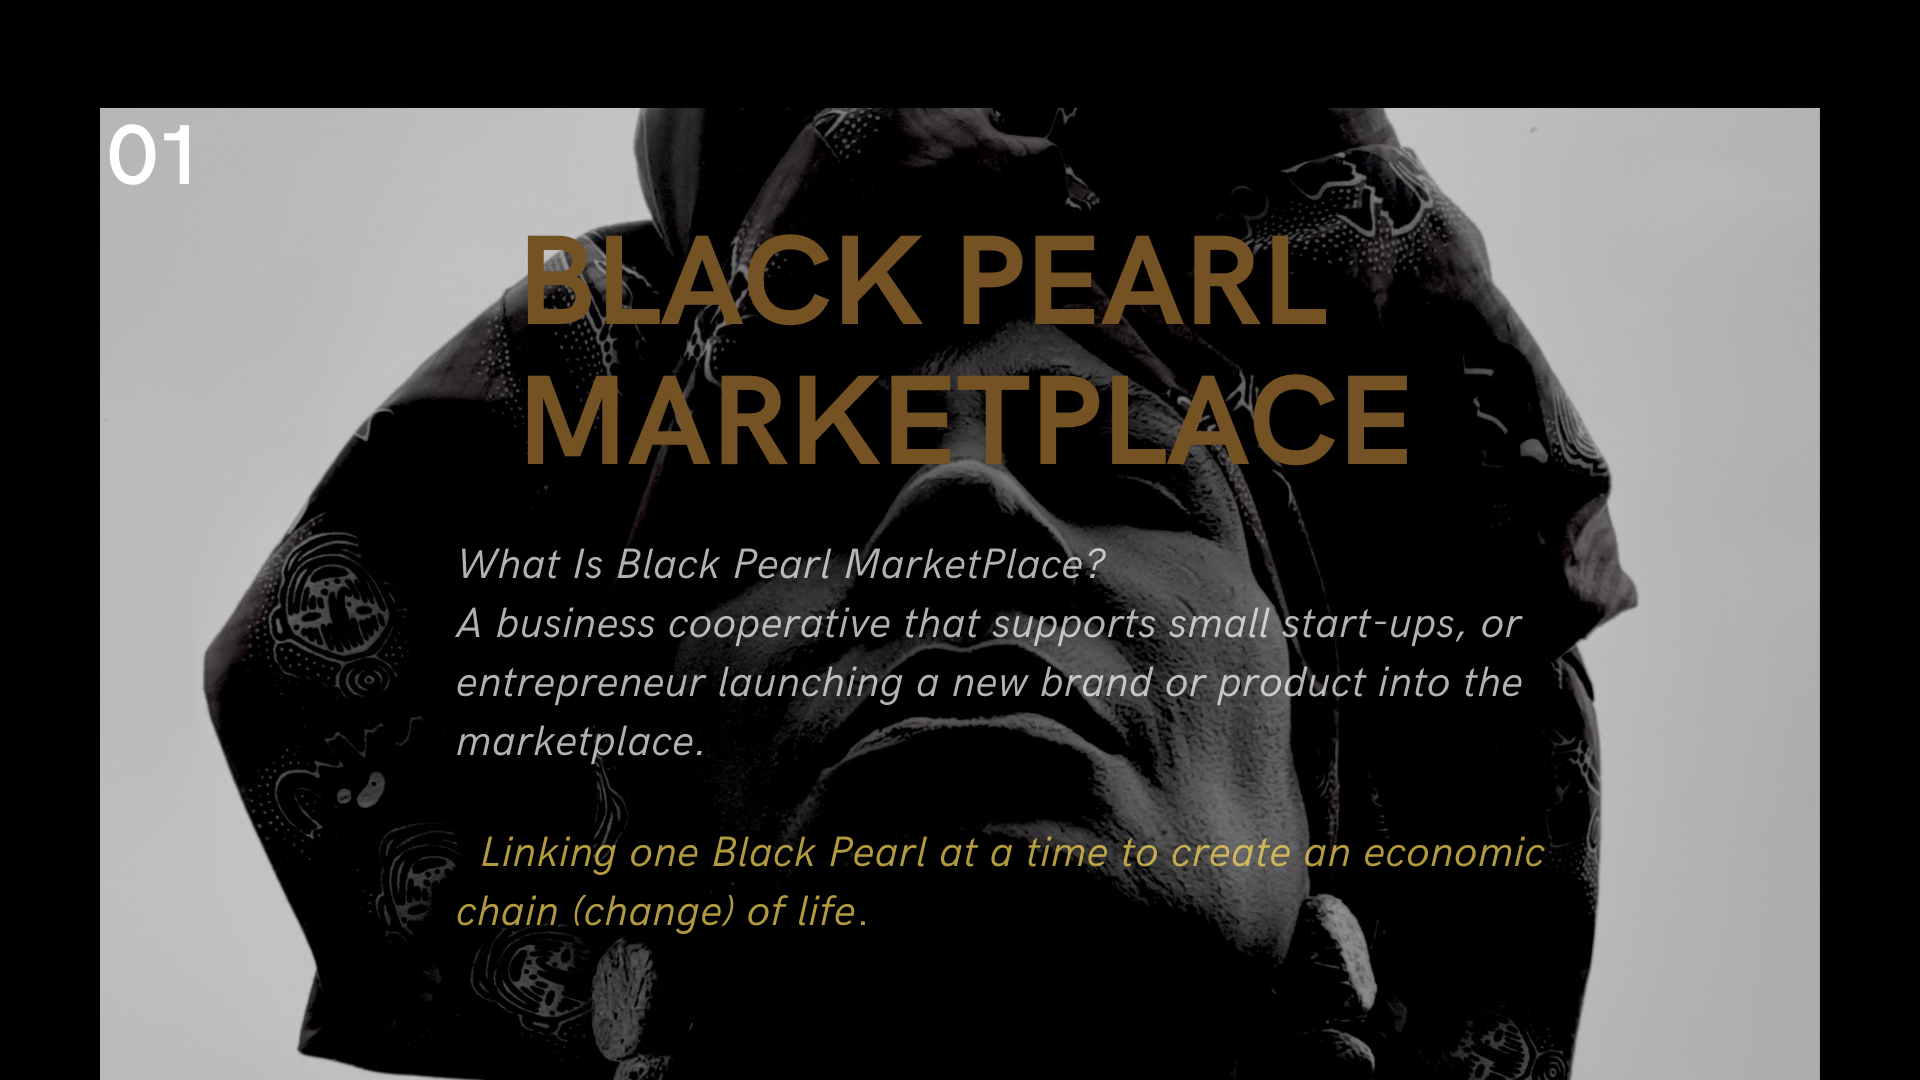 What Is Black Pearl MarketPlace?